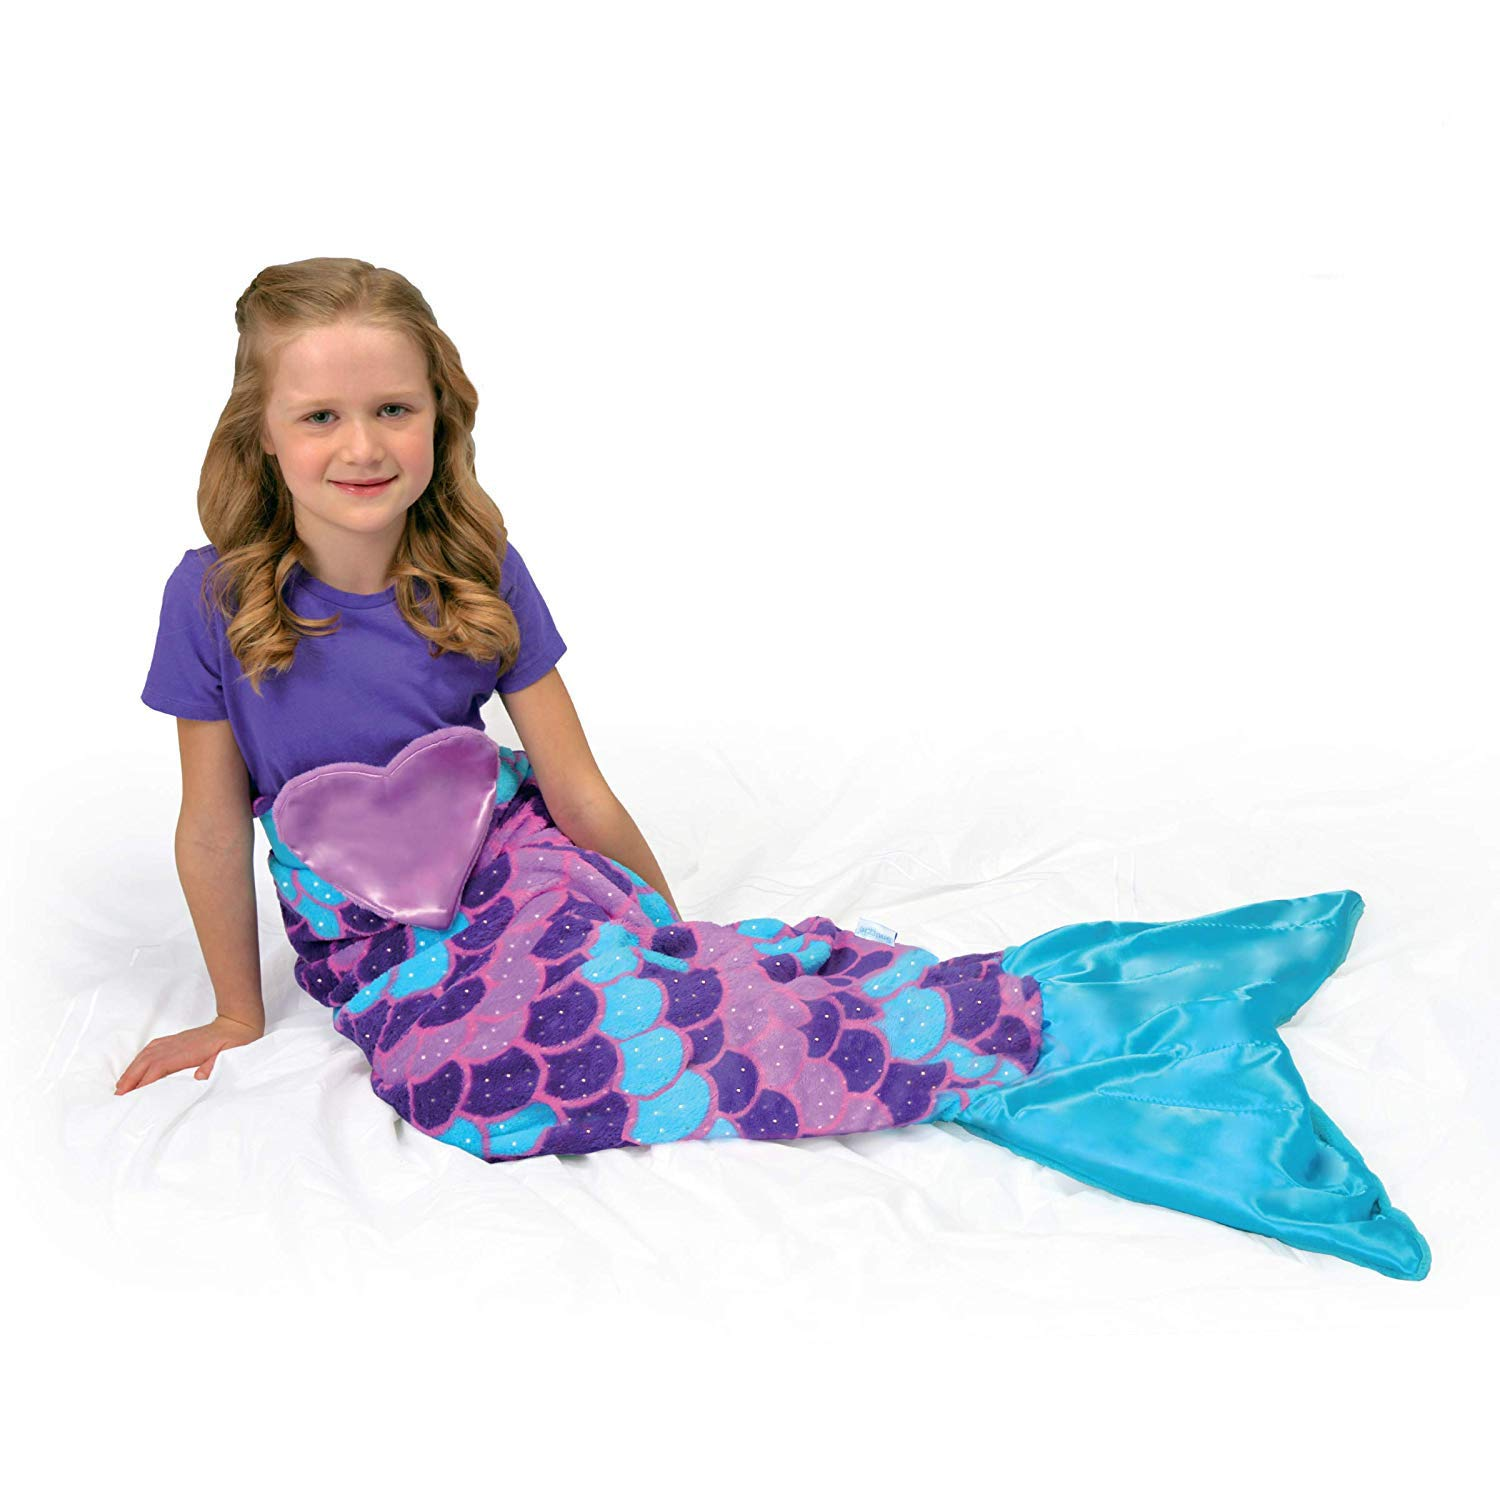 Snuggie Tails Comfy Cozy Super Soft Warm Mermaid Blanket for Kids (Purple), As Seen on TV